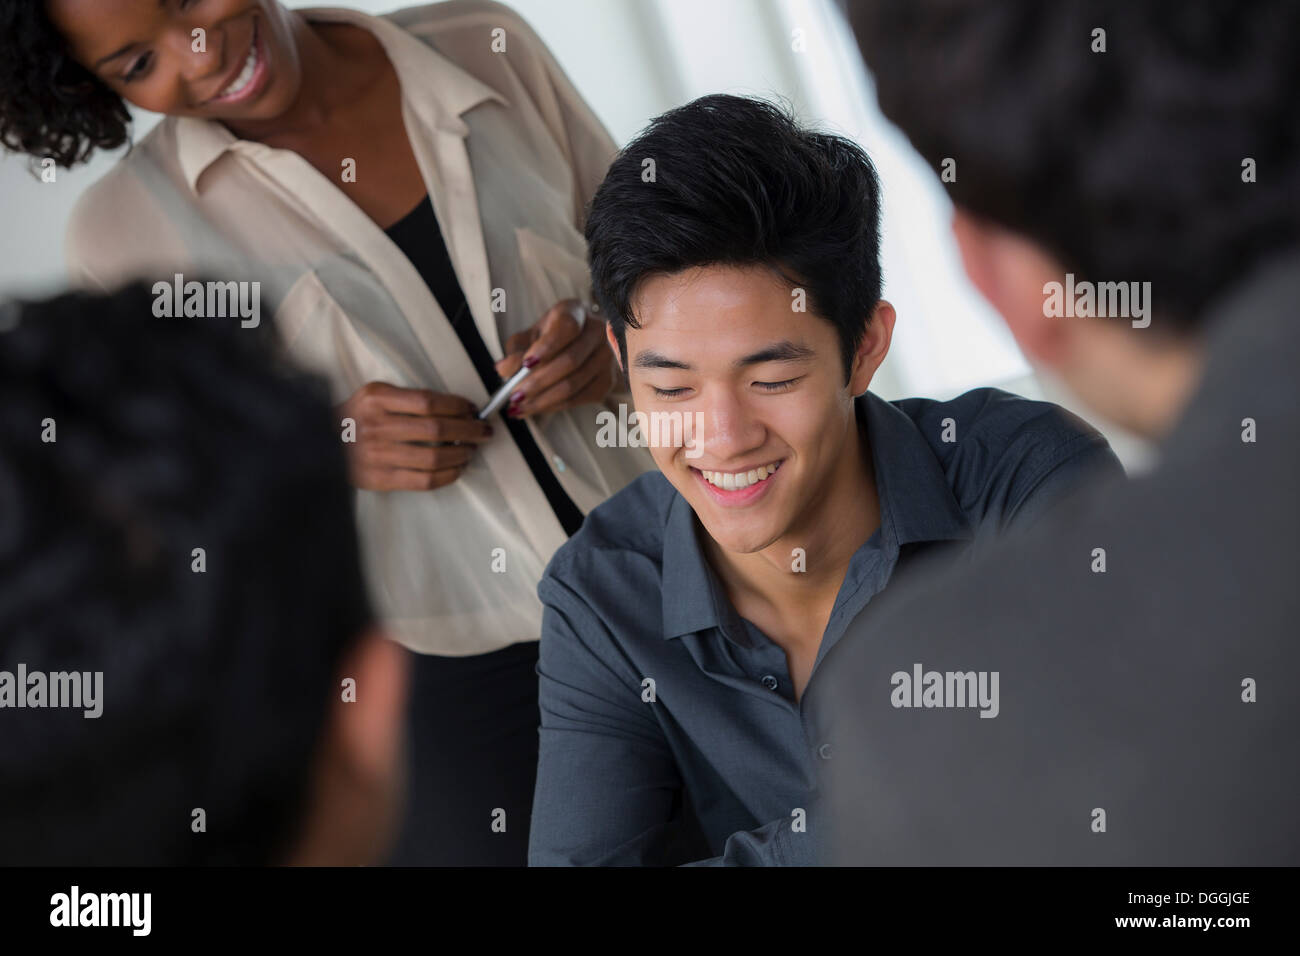 Informal portrait of young male office worker with colleagues - Stock Image